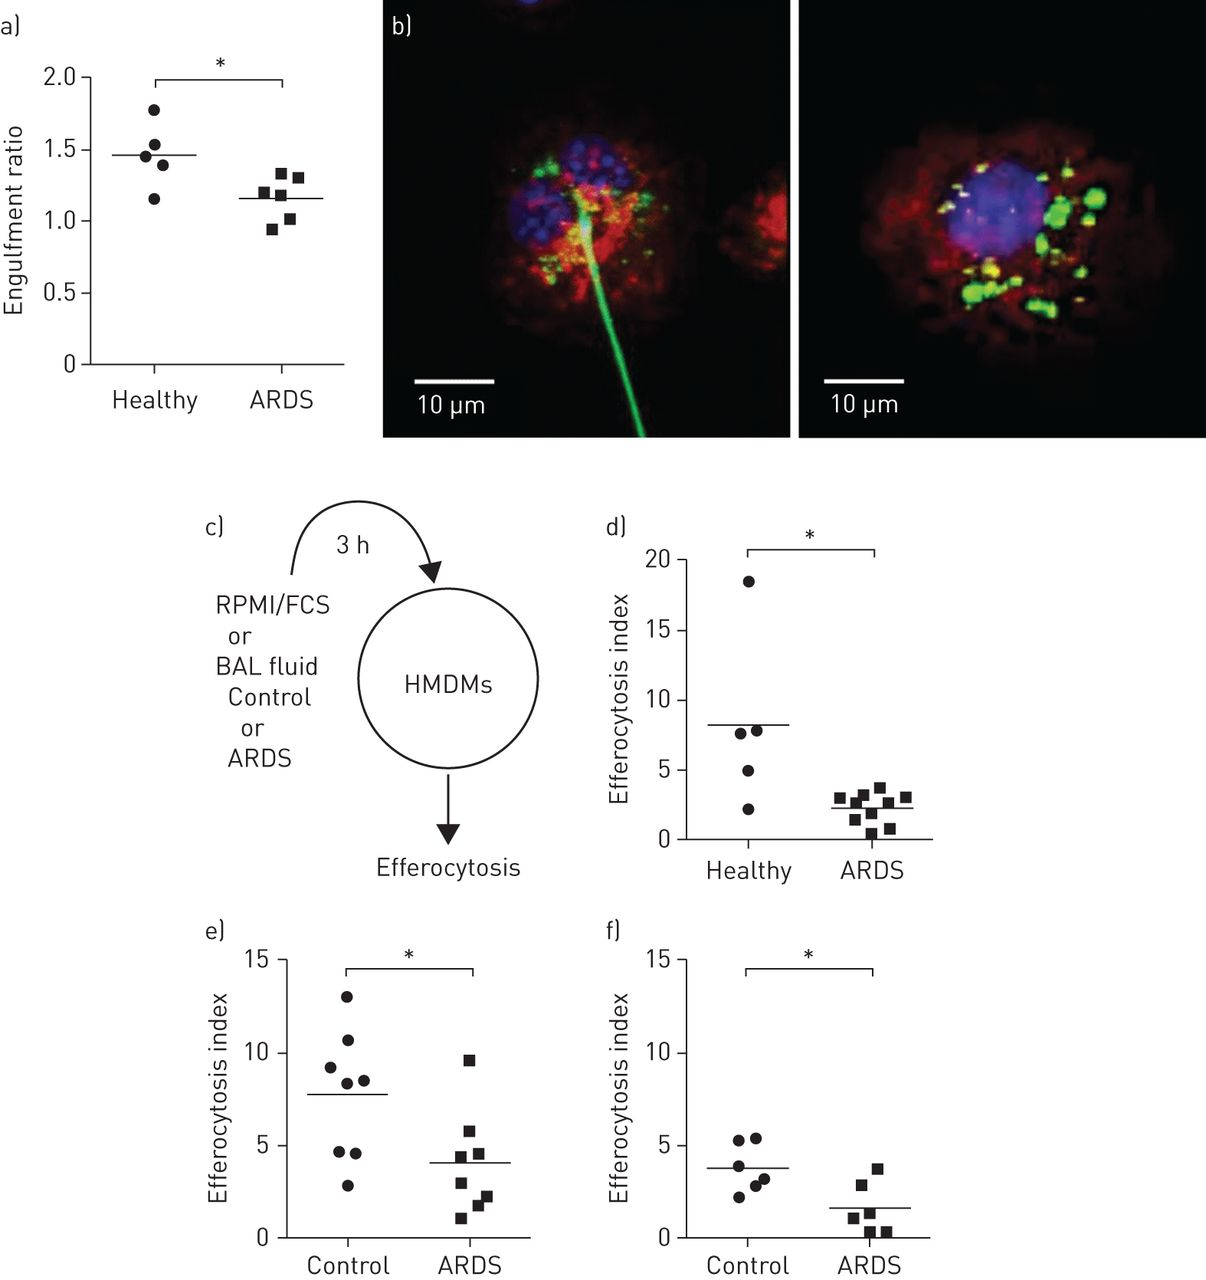 Impaired efferocytosis and neutrophil extracellular trap